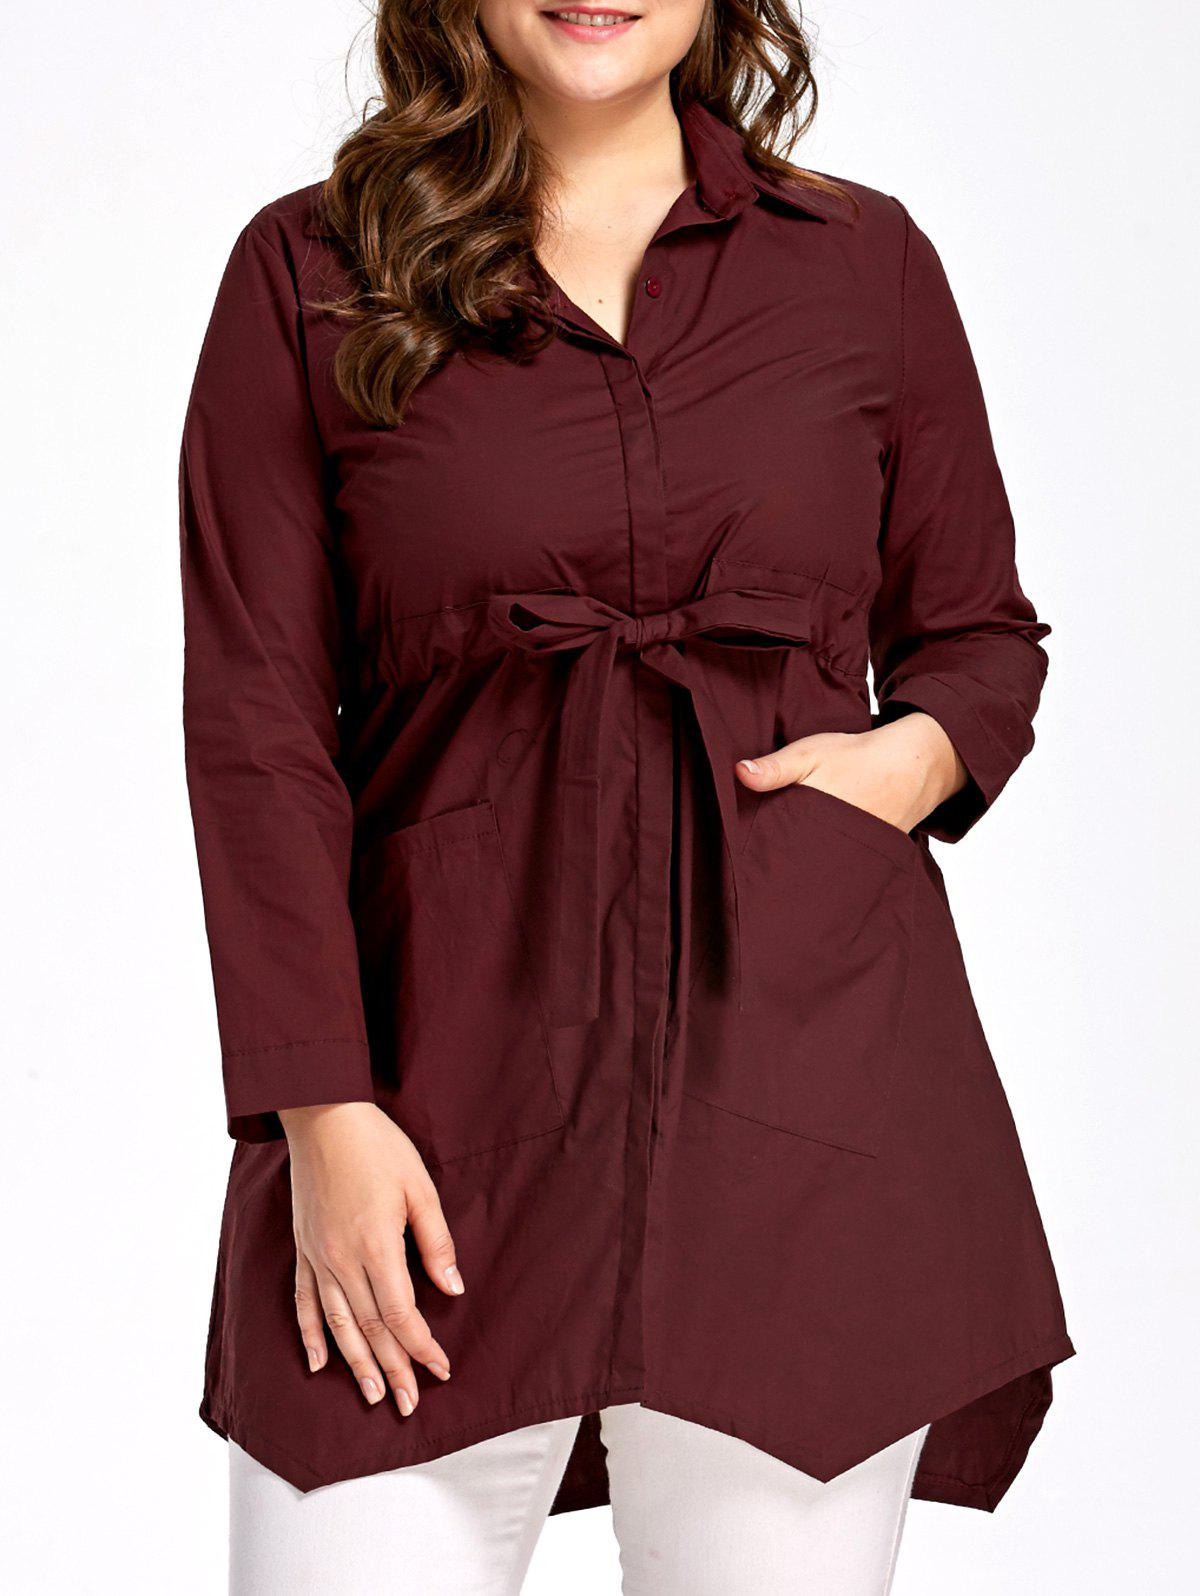 Bowknot Plus Size Pockets Tunic Top plus size bowknot embellished tunic top